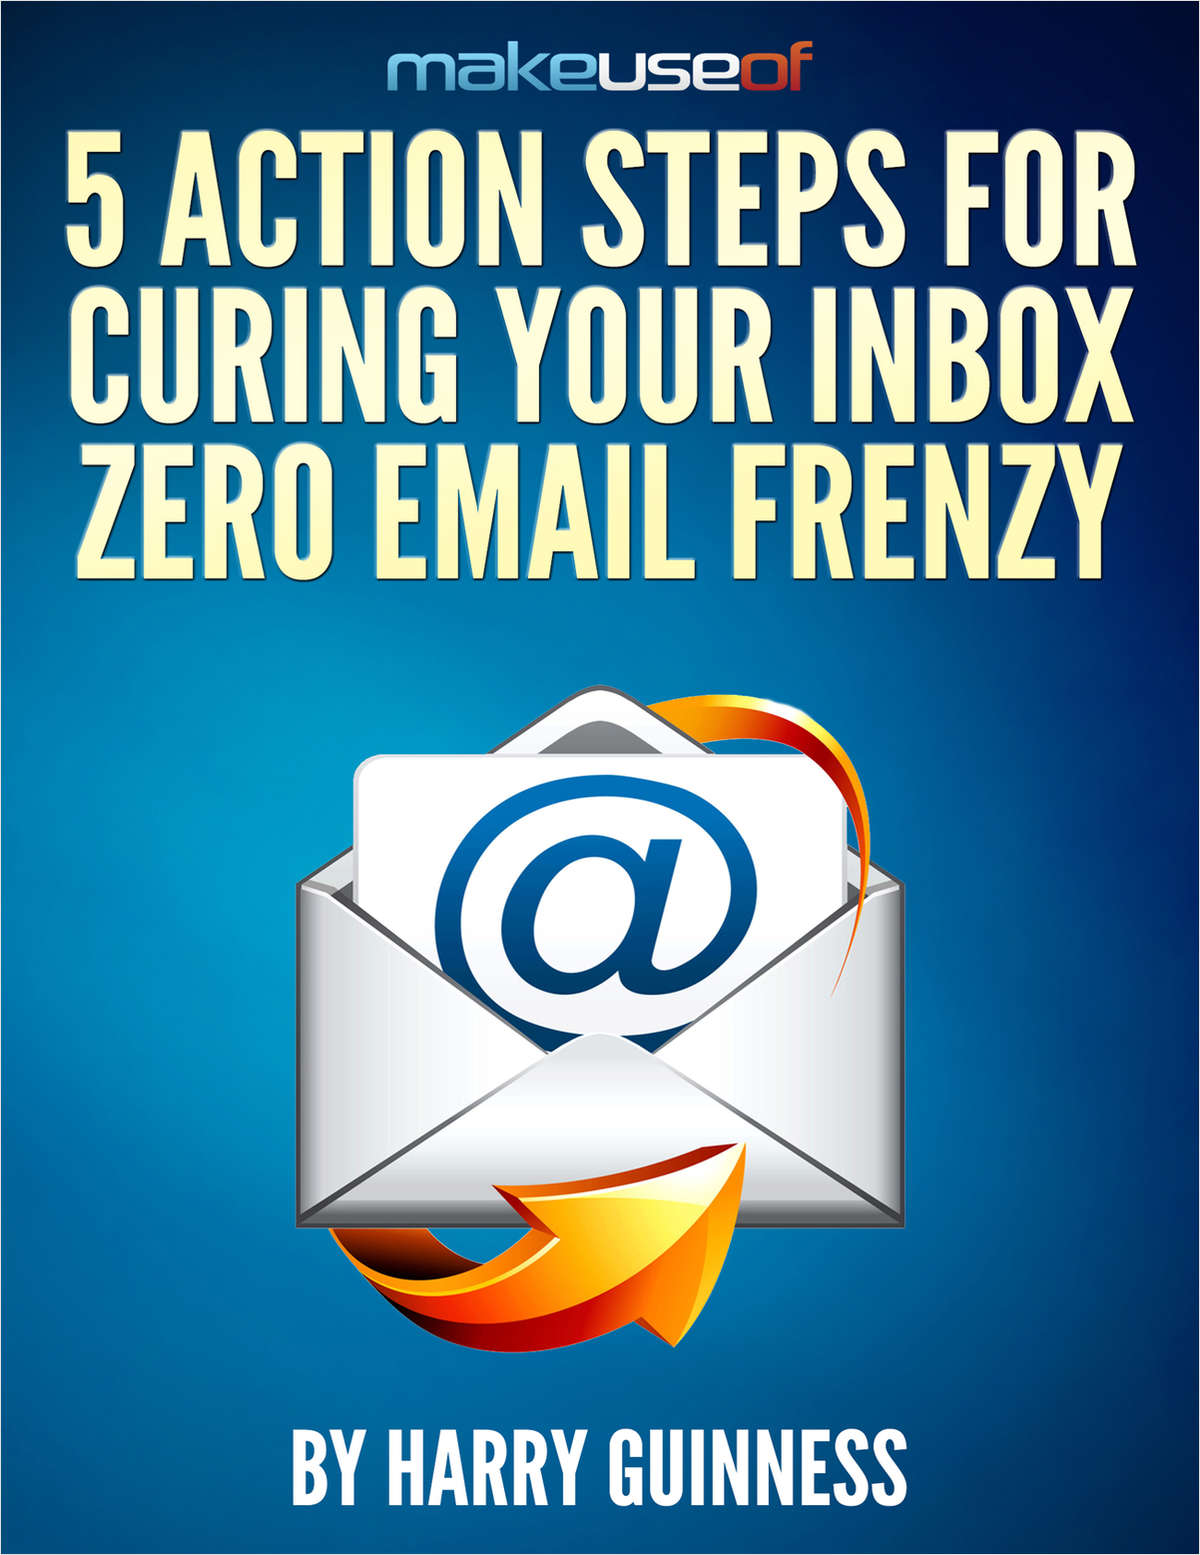 5 Action Steps For Curing Your Inbox Zero Email Frenzy